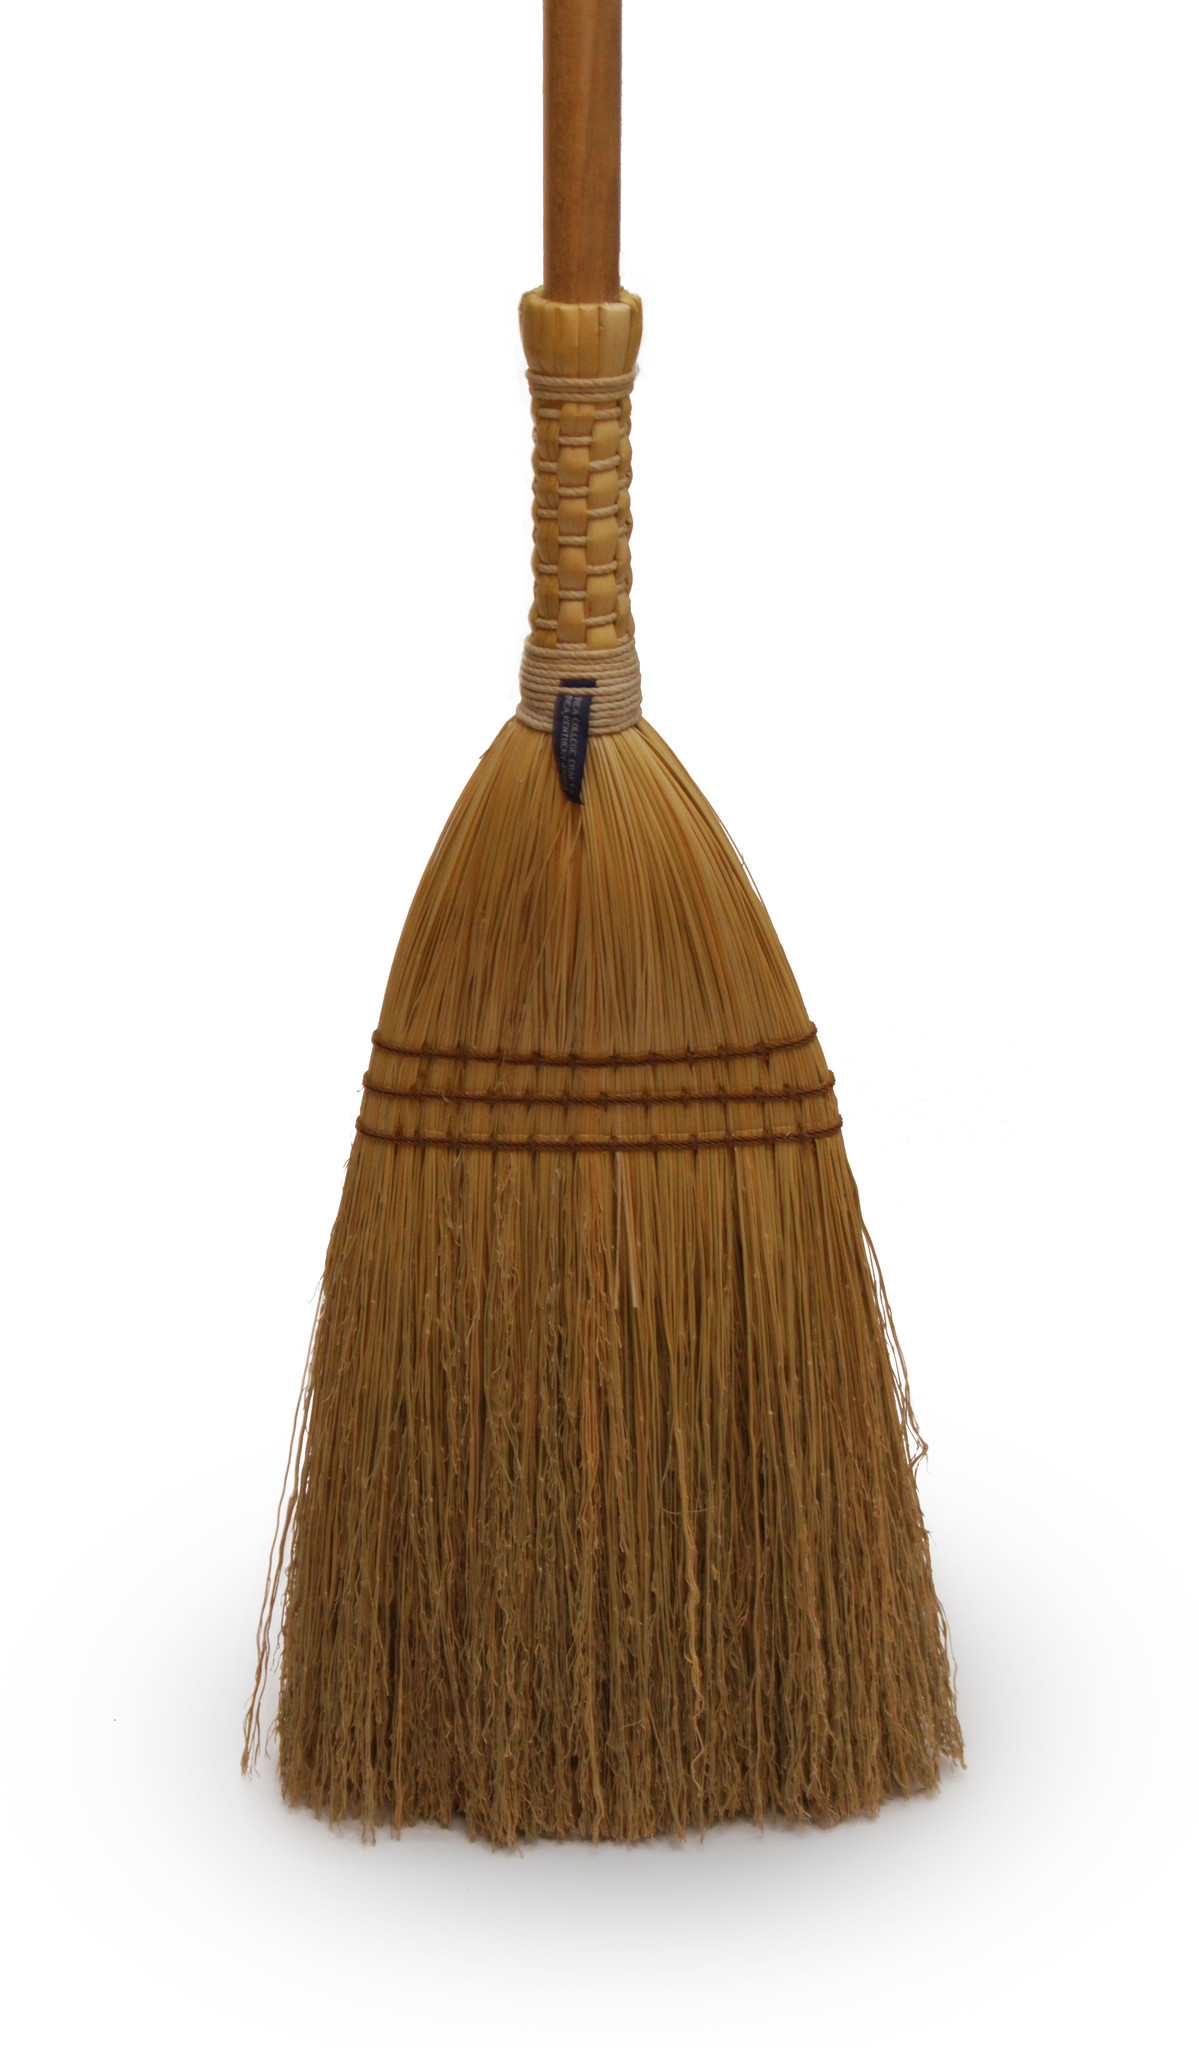 Shaker Braid Broom - Berea College Visitor Center & Shoppe